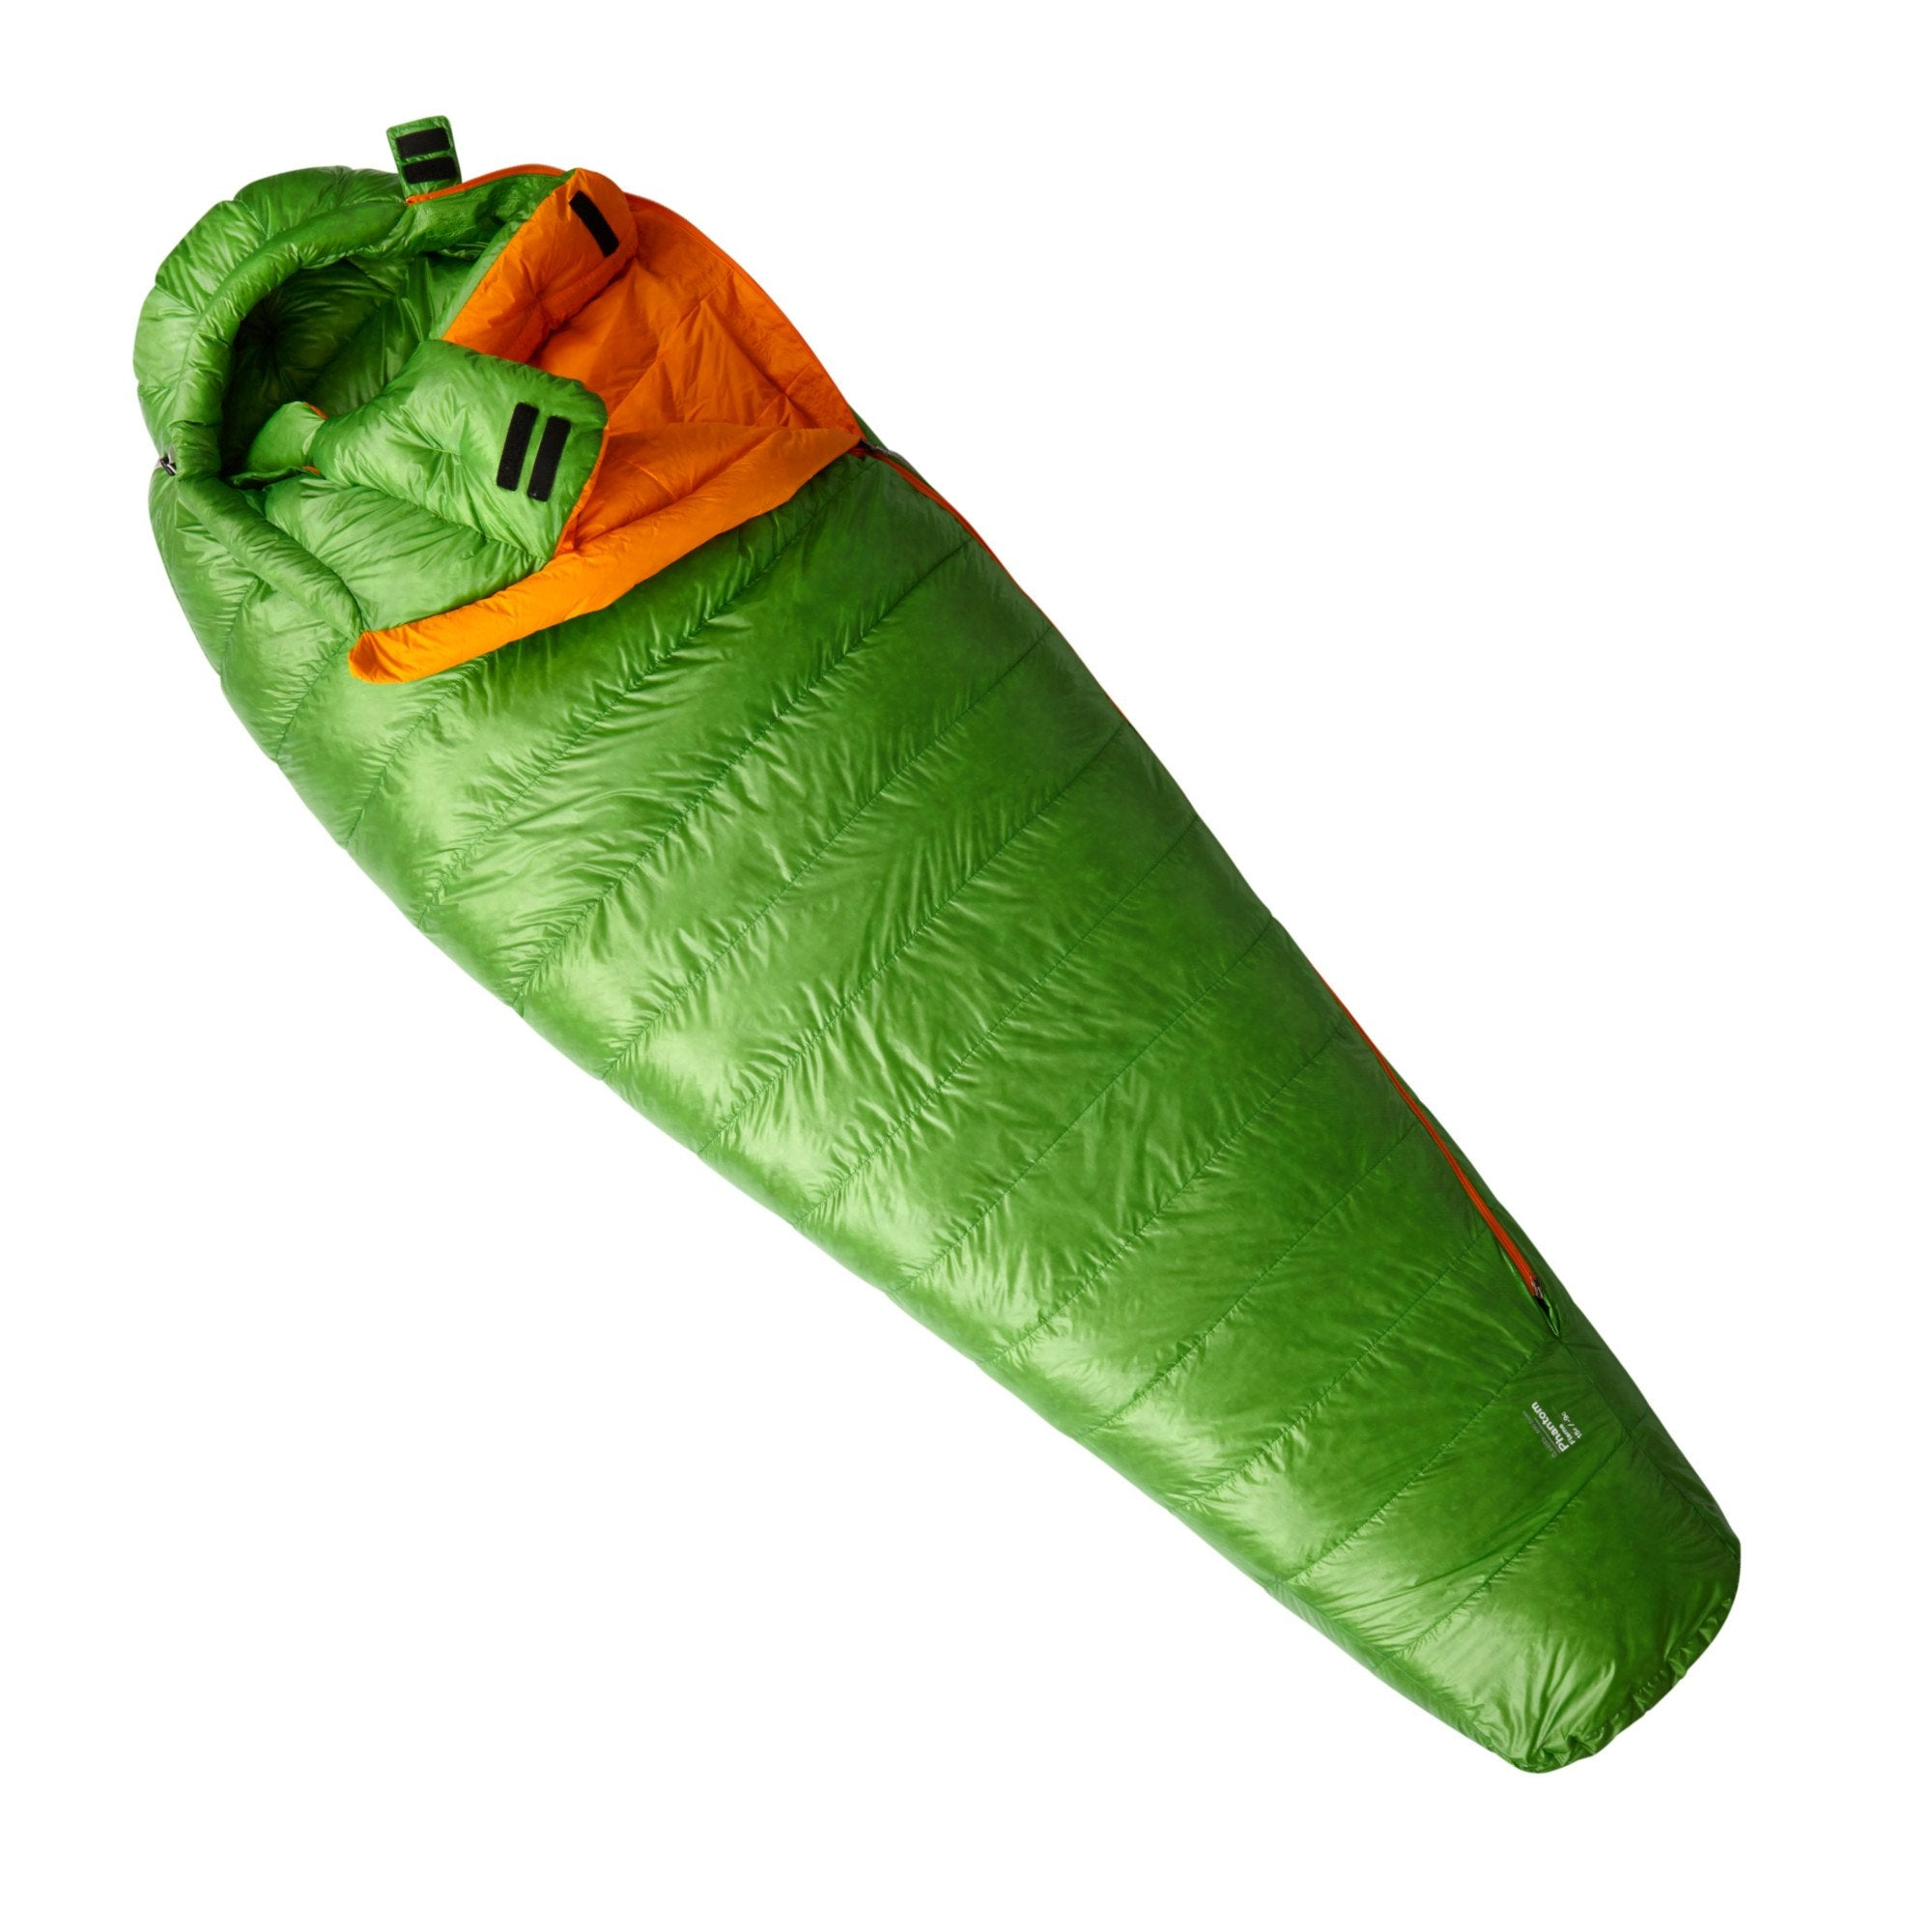 Mountain HardwearMountain Hardwear Phantom Flame sleeping bag shown closed, laid flat in green color